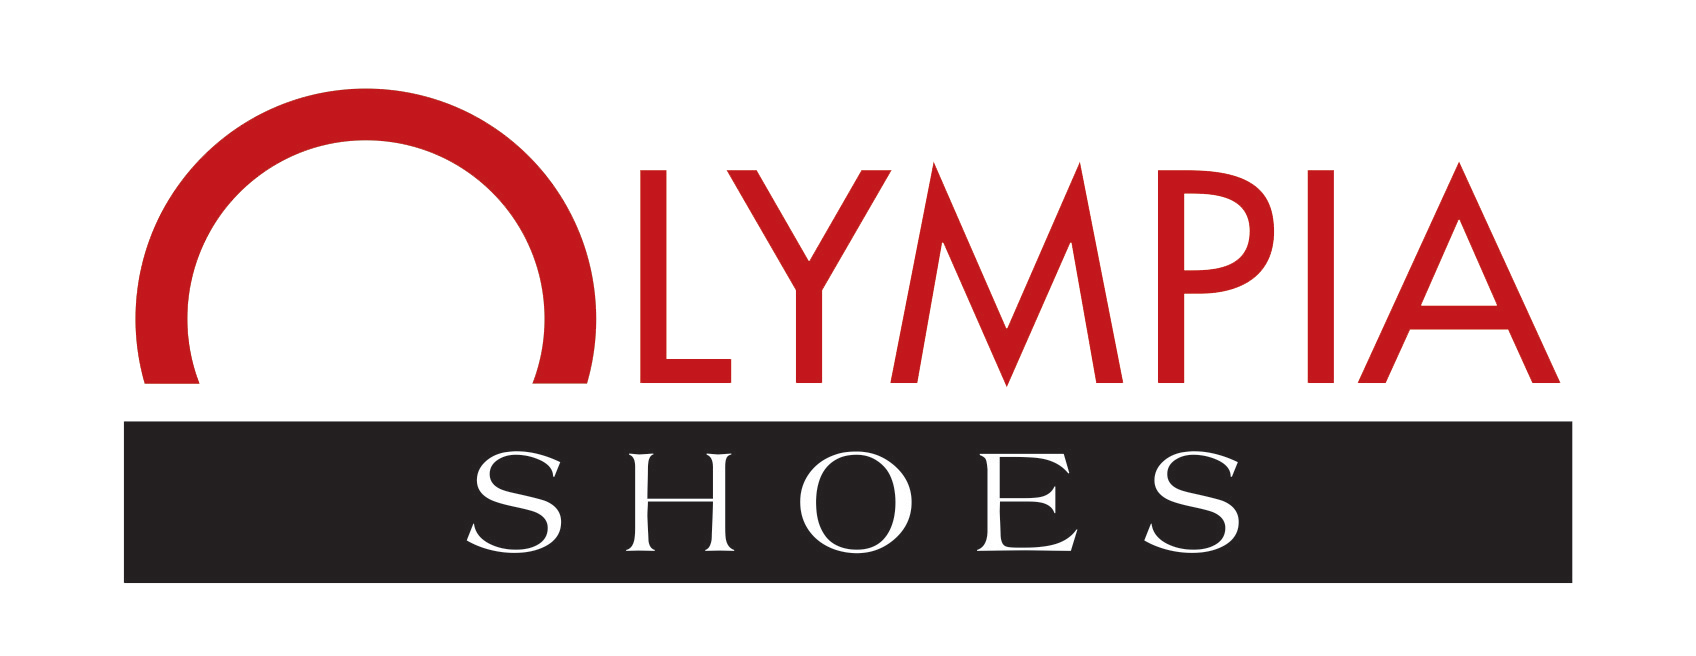 Topánky Olympia shoes